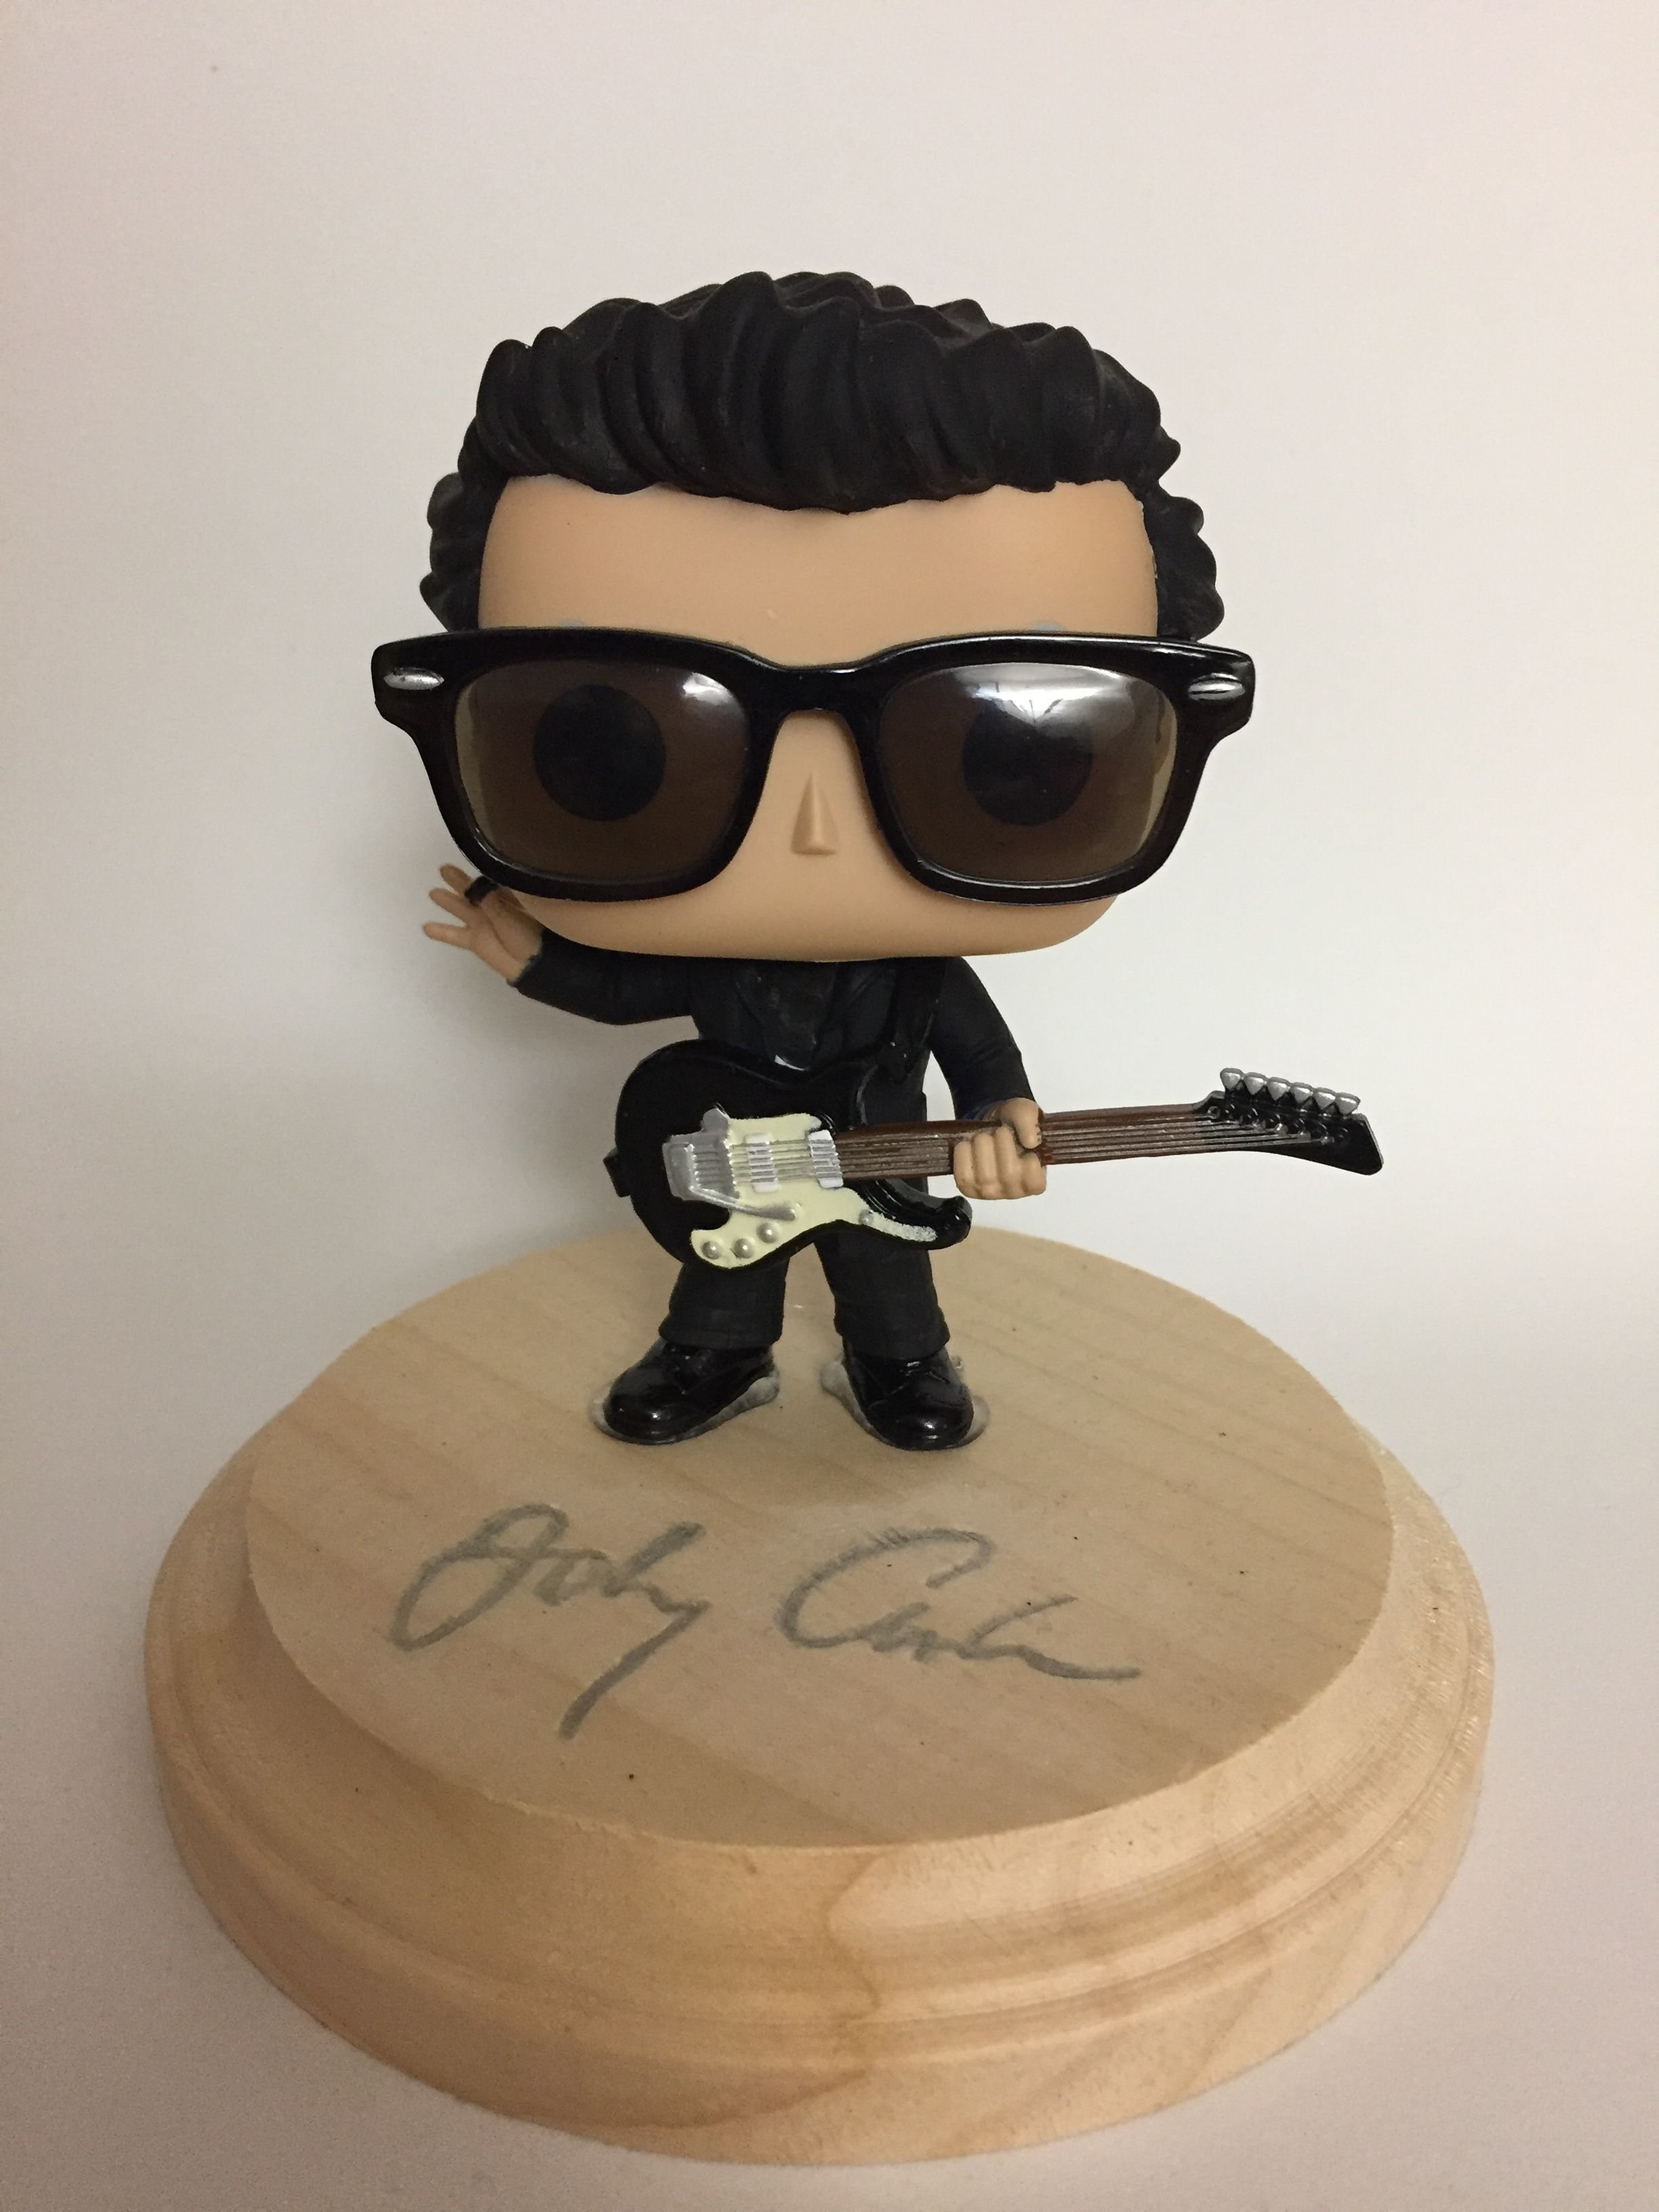 Johnny Cash custom Funko | Stuff I Made | Pinterest | Johnny cash